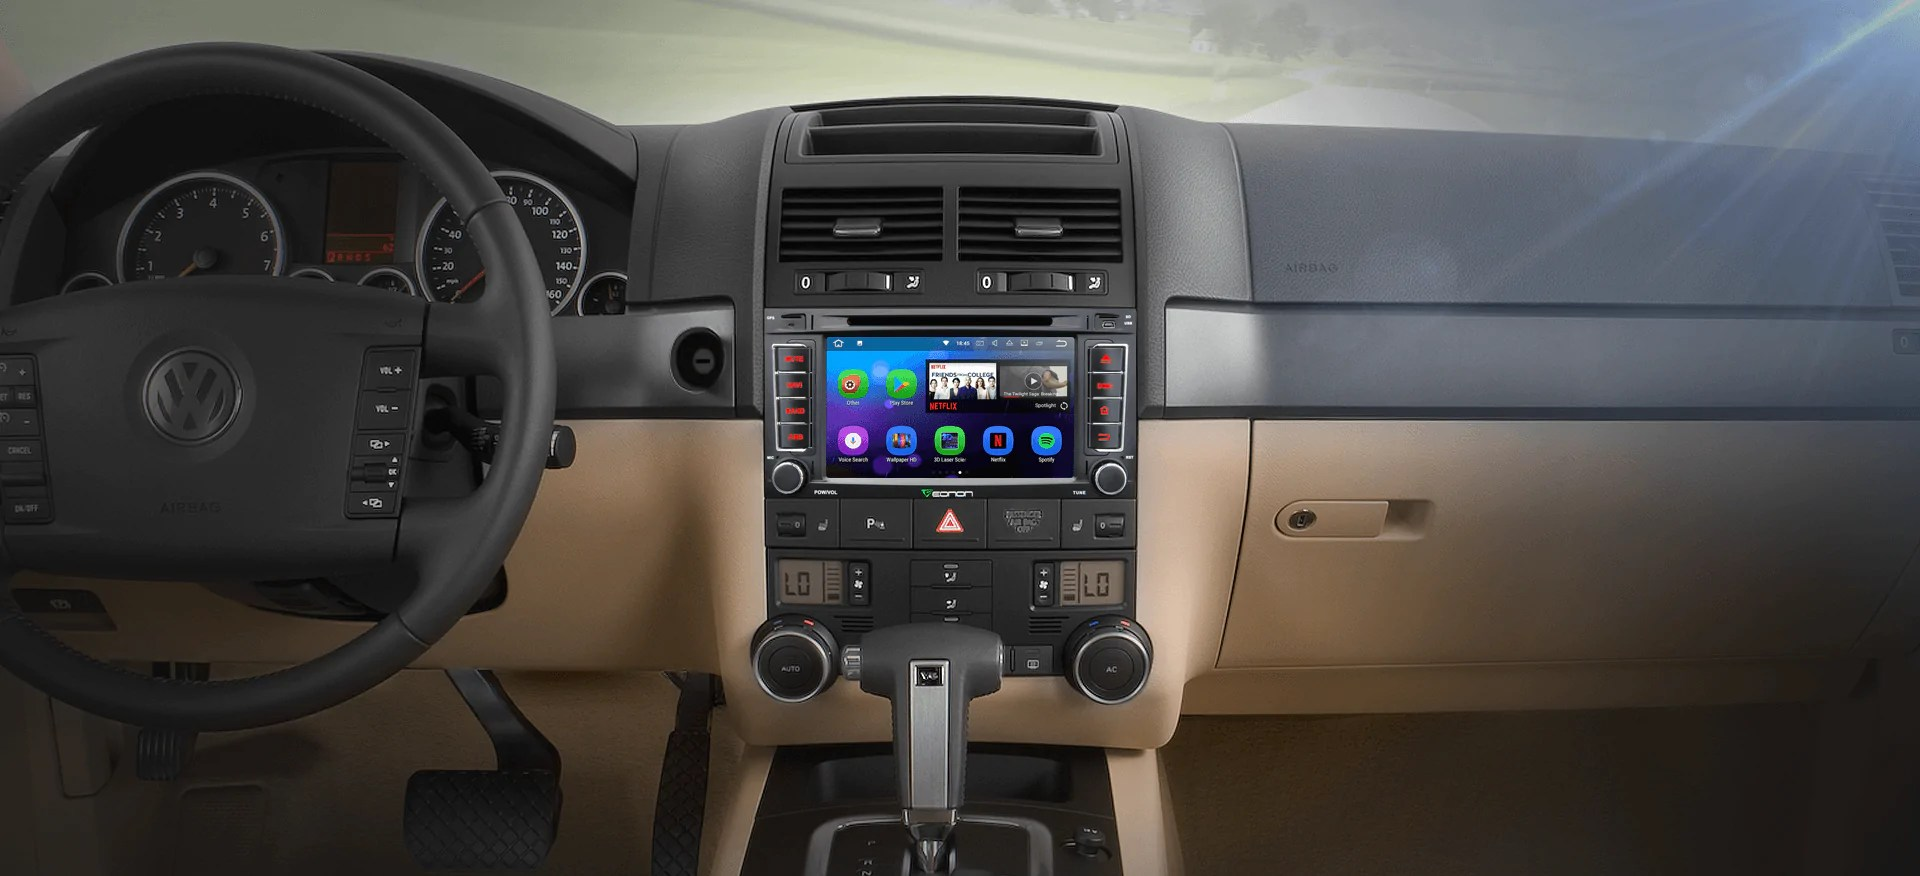 hight resolution of volkswagen vw touareg transporter 7 digital touch screen android ios multimedia car dvd gps